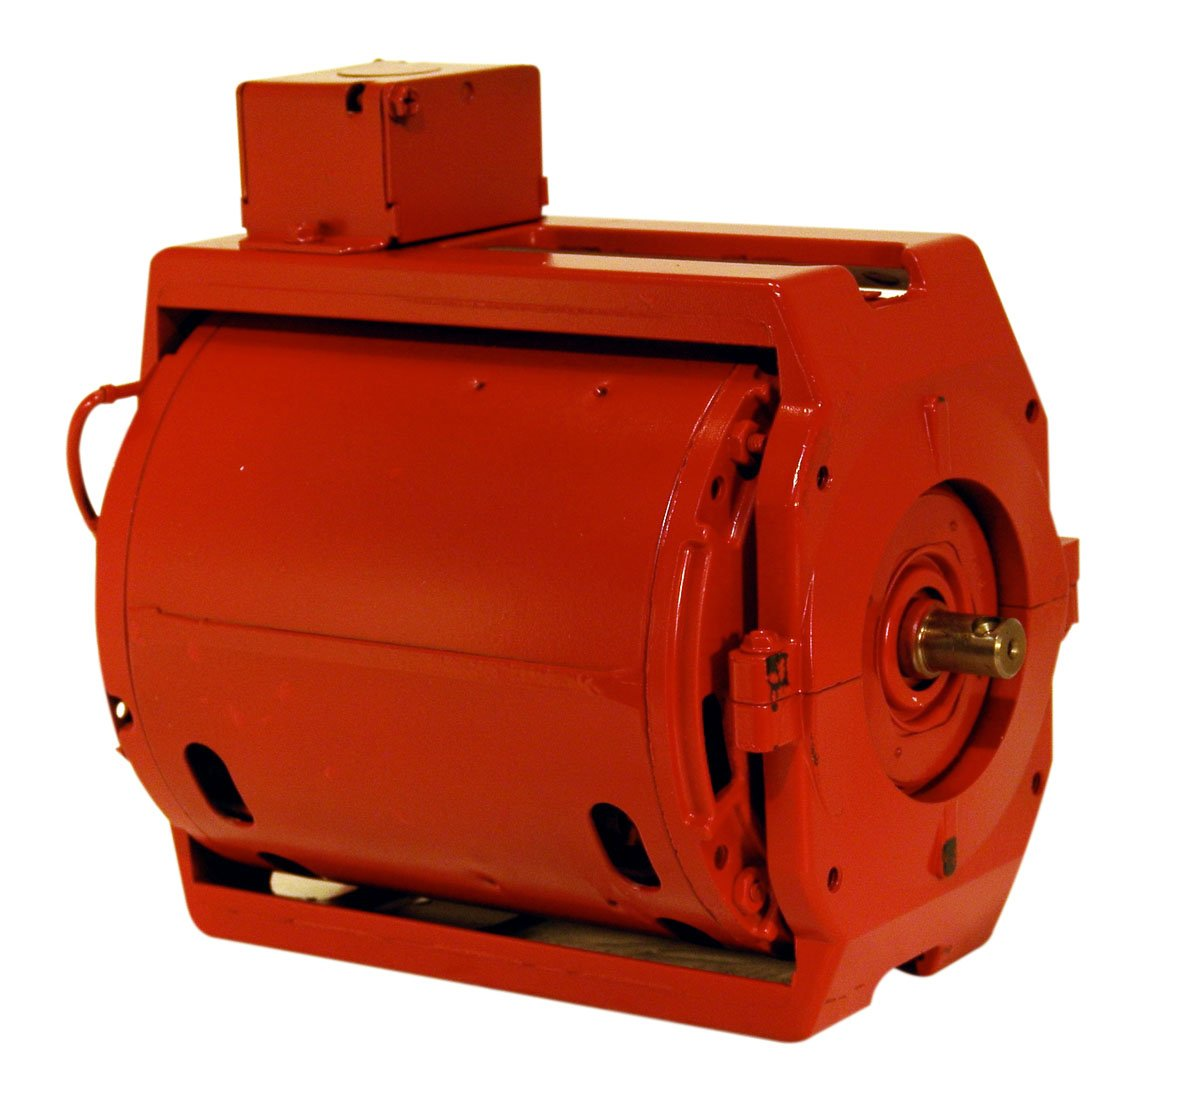 A.O. Smith 941L 1/6 HP, 1800 RPM, Shaft-1/2-Inch by 3/4-Inch With Set Screw Hot Water Circulator Motor